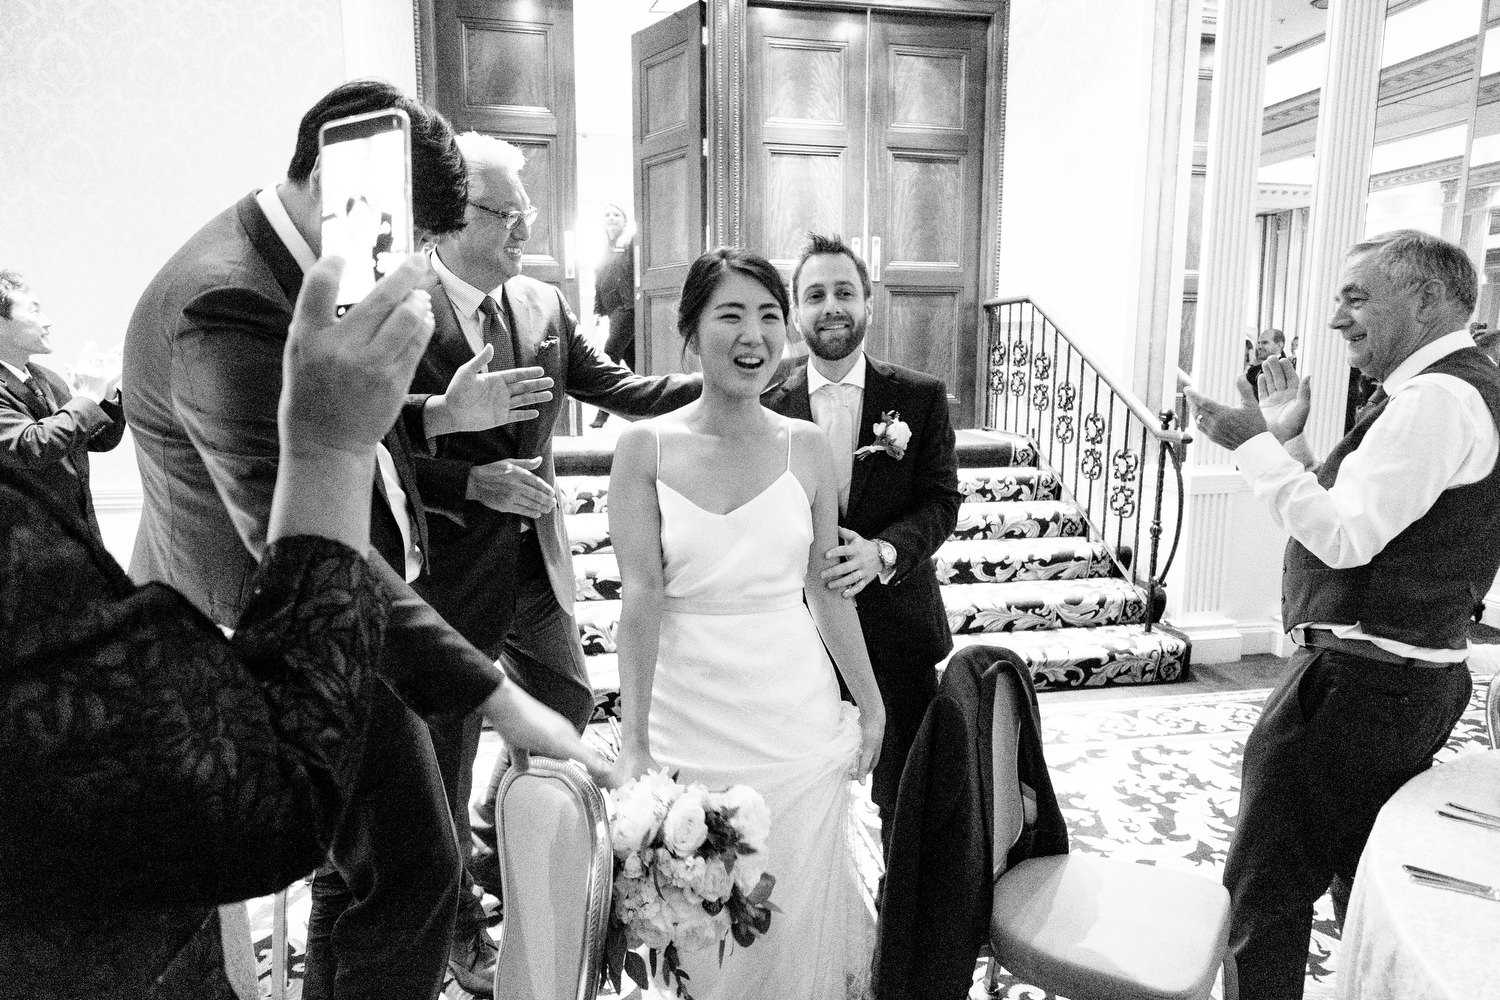 dmp0550_photographer_wedding_dublin_david_mcclelland_candid_photography_fujifilm_shelbourne_reception_documentary